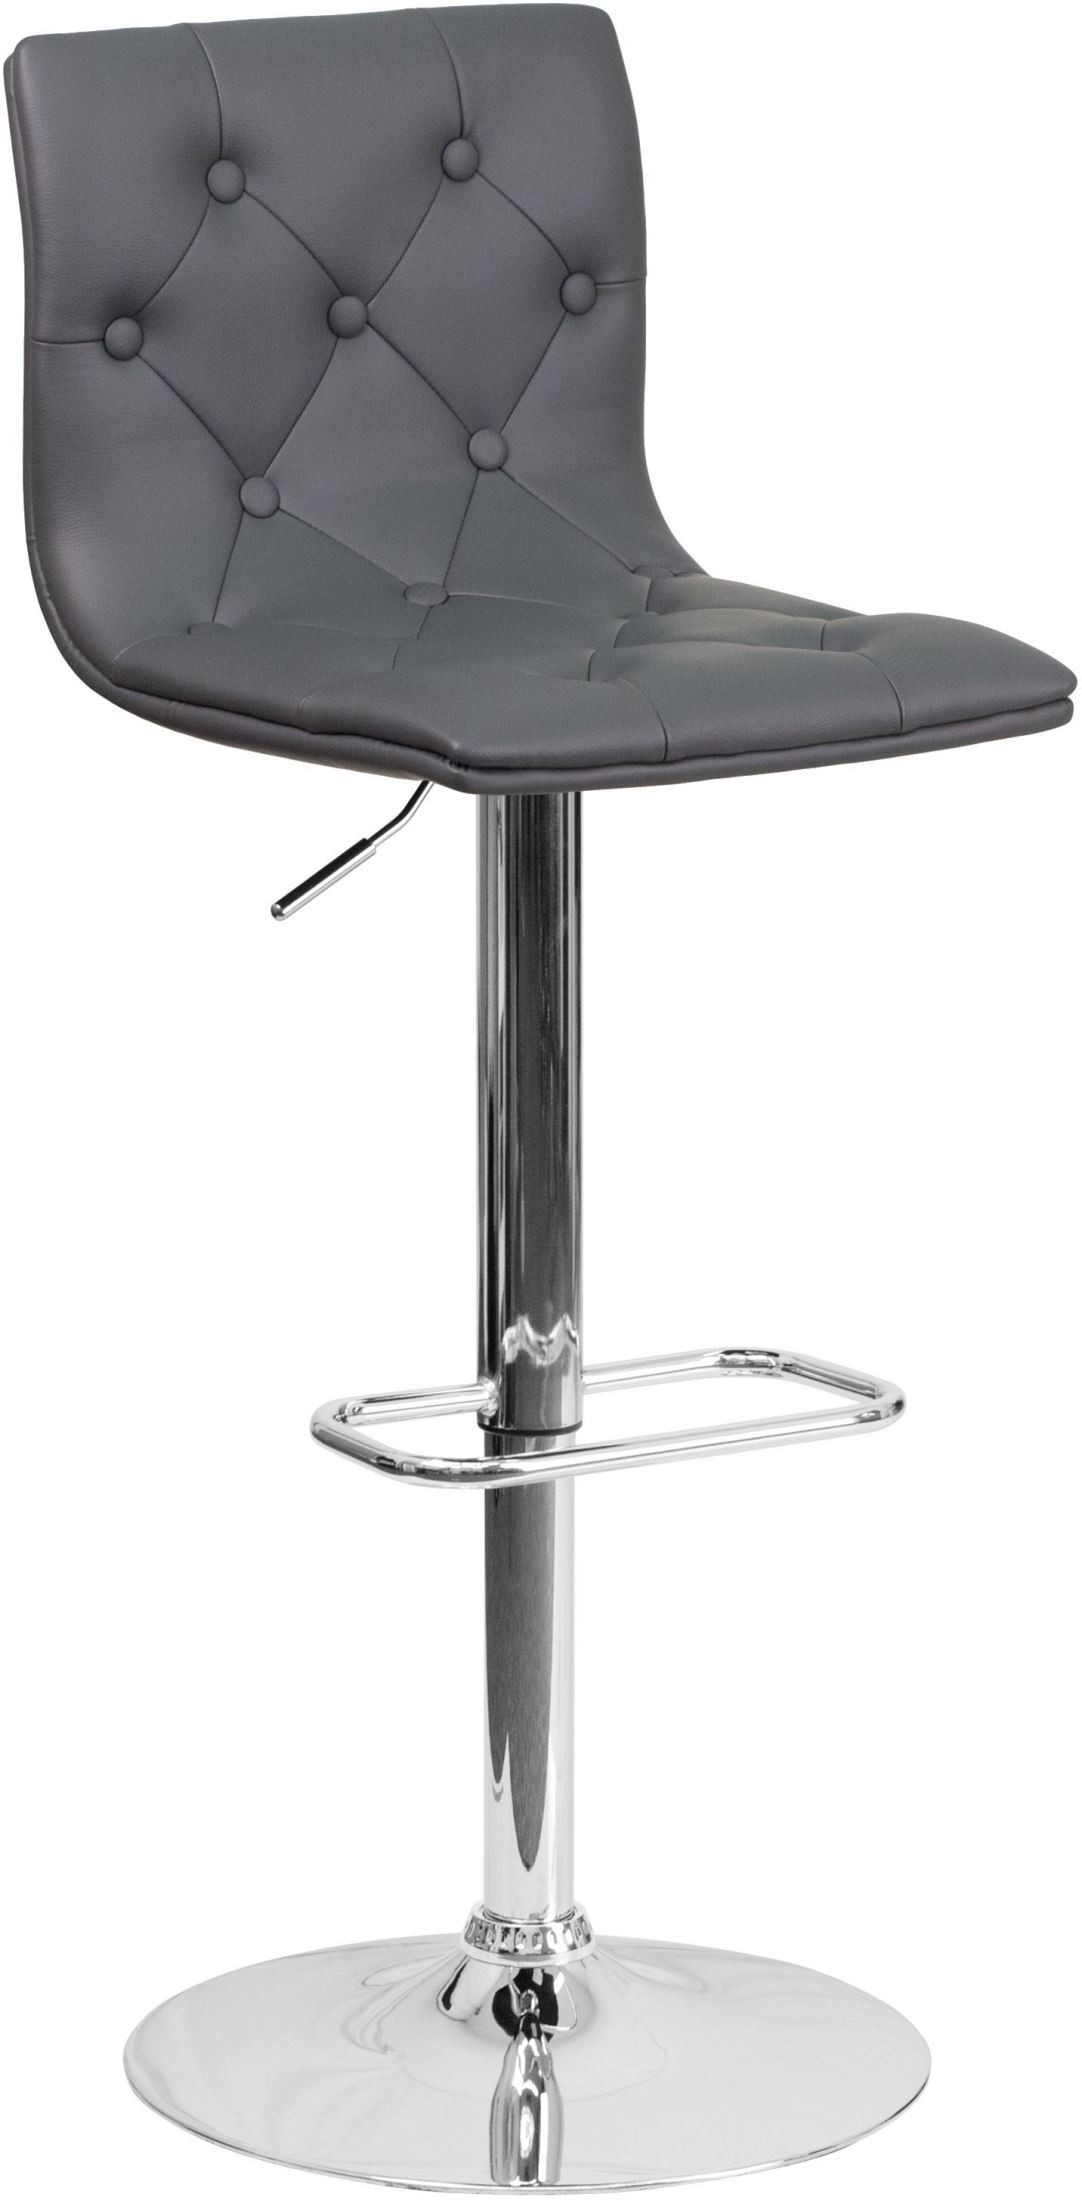 Contemporary Tufted Gray Vinyl Adjustable Height Bar Stool  : ch 112080 gy gg from colemanfurniture.com size 1082 x 2200 jpeg 159kB